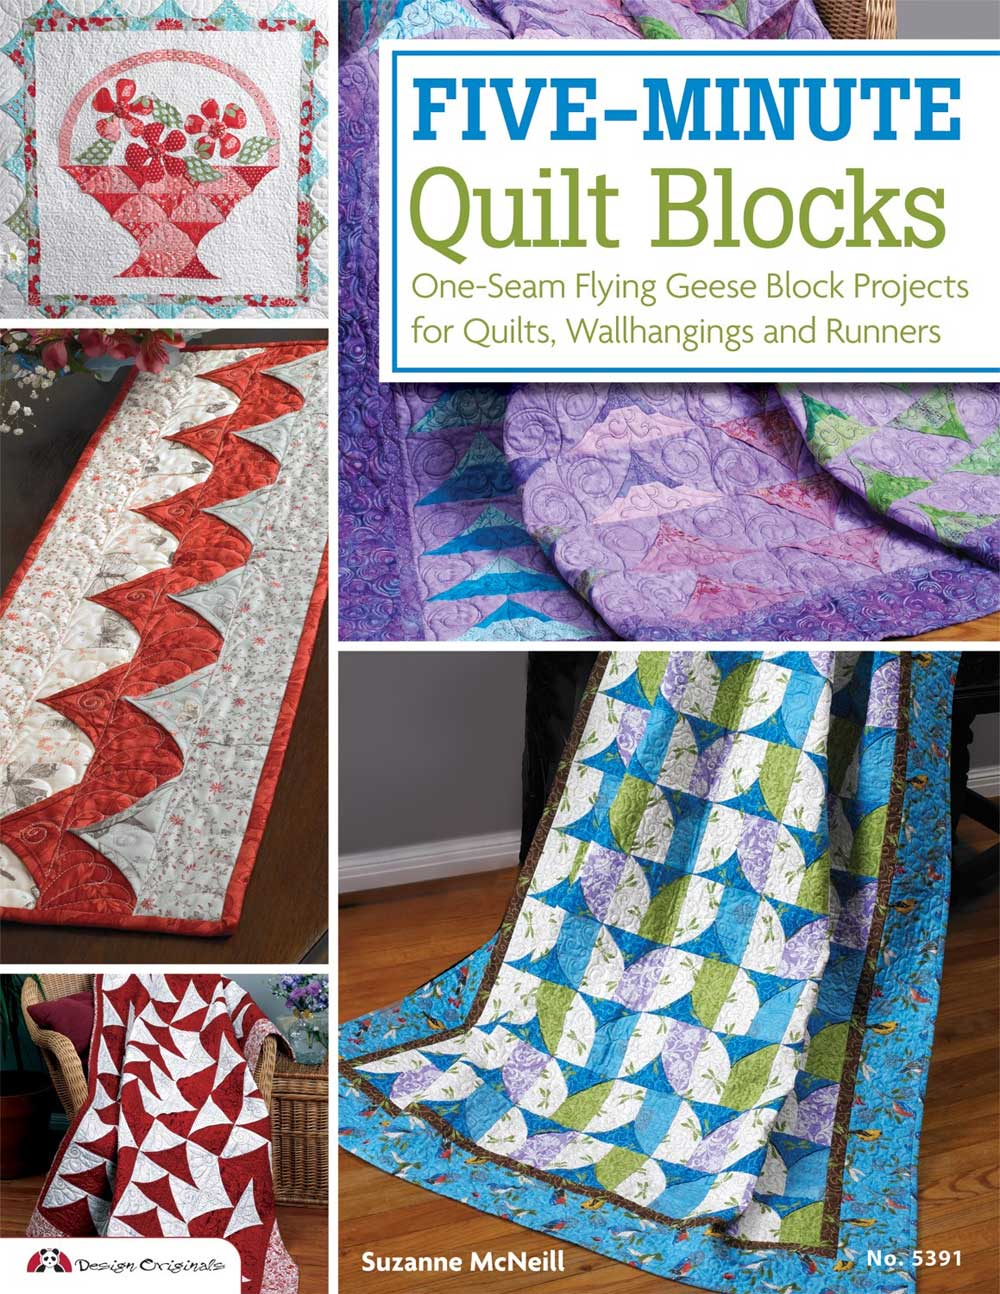 Five-Minute Quilt Blocks - Quilting Books